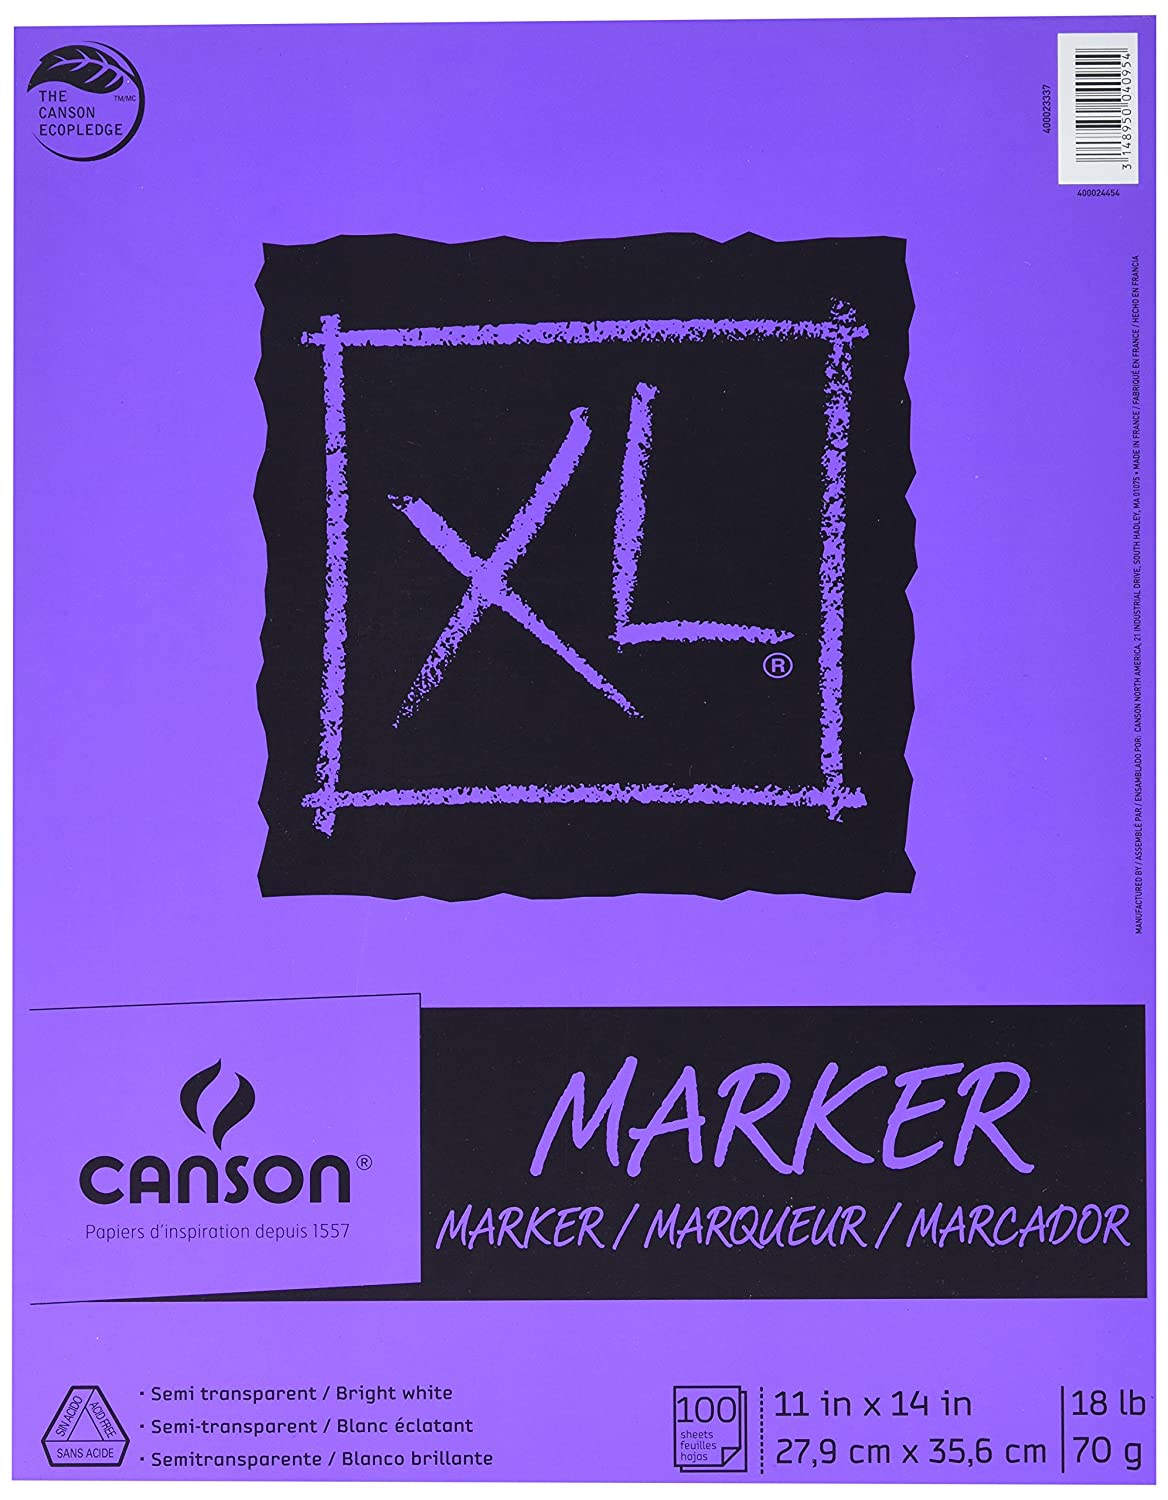 400023336 Canson XL Series Marker Paper Pad 9 x 12 Inch Fold Over 100 Sheets 18 Pound Semi Translucent for Pen Pencil or Marker White